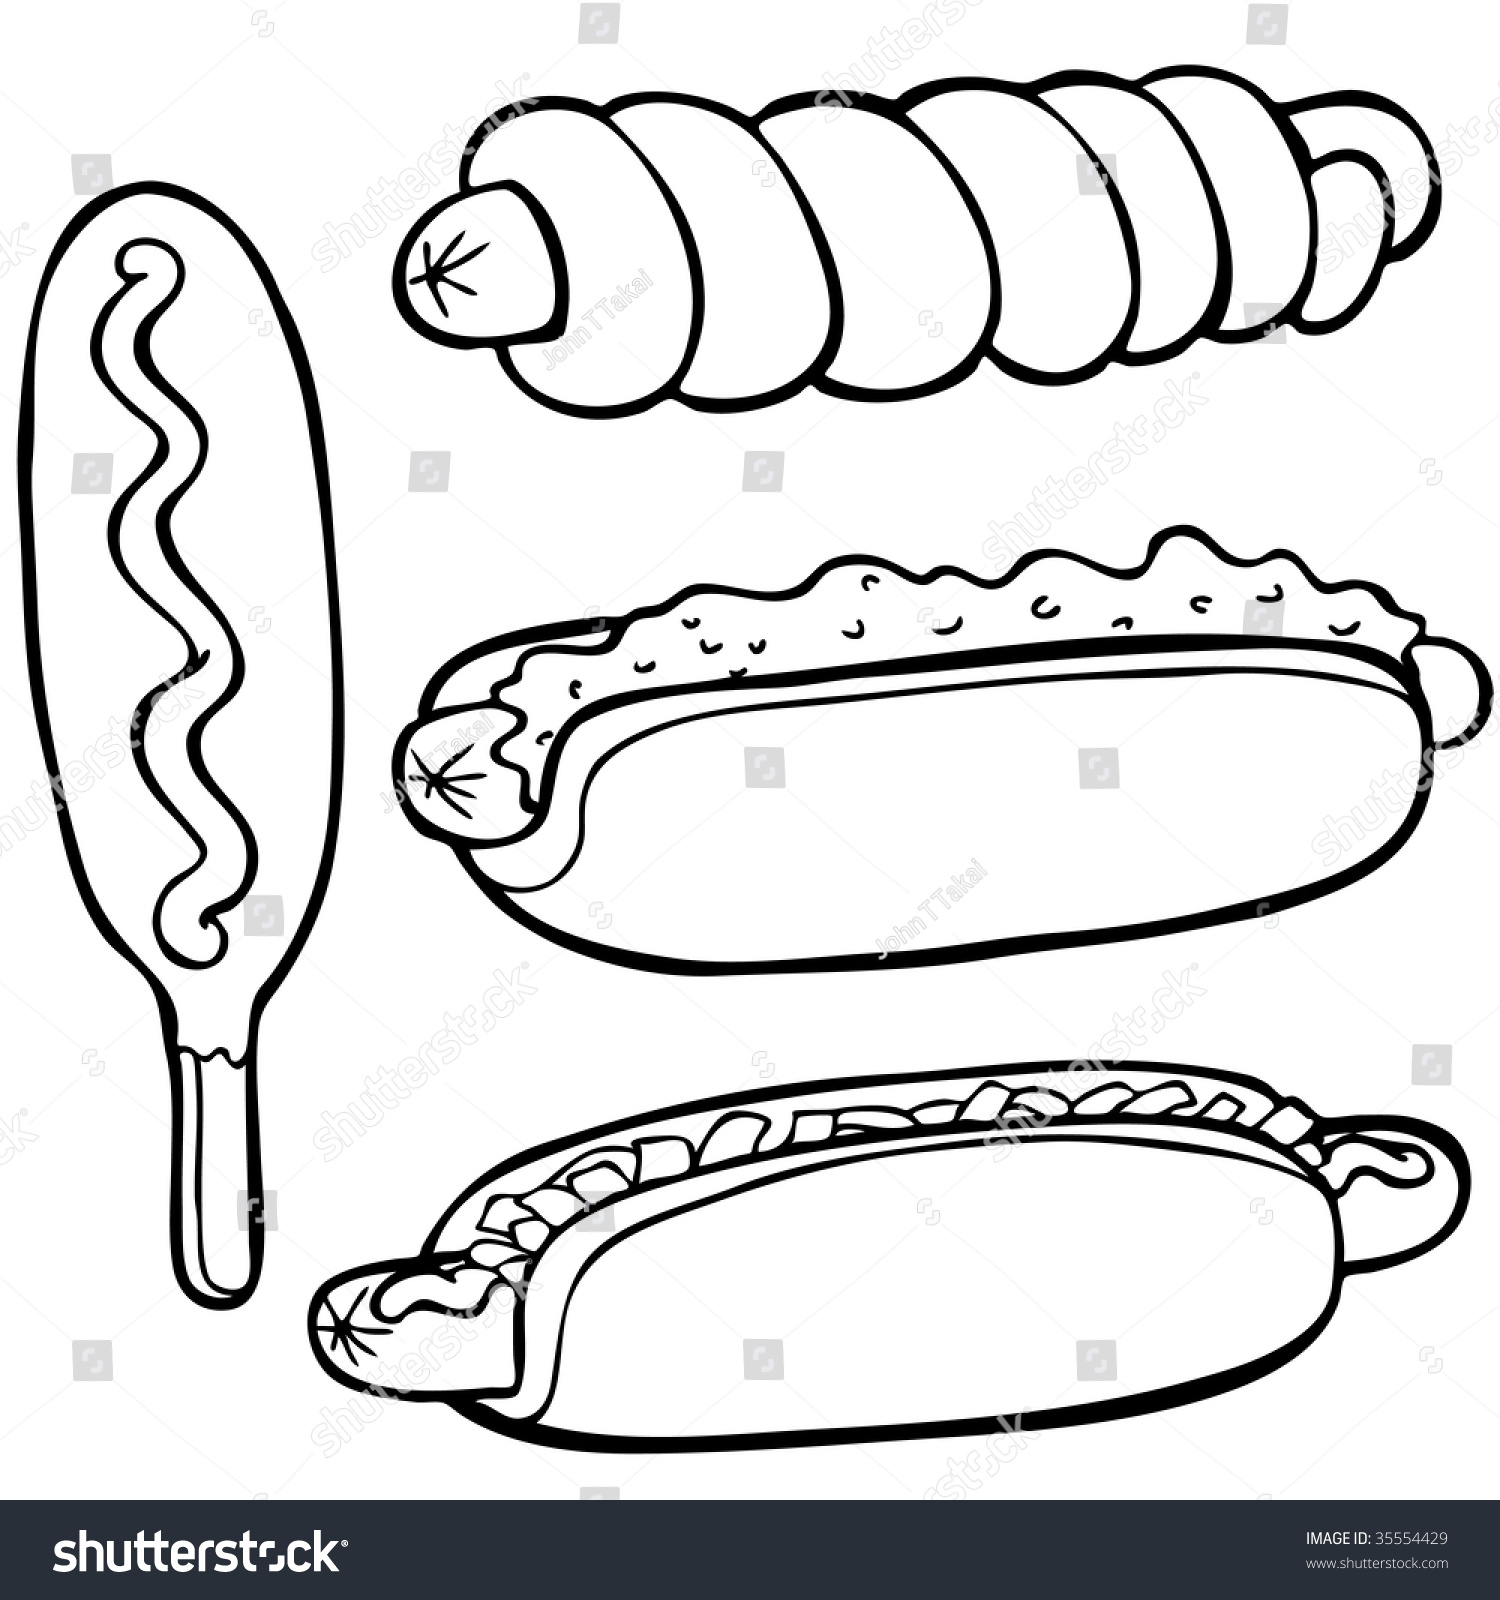 Line Drawing Food : Hot dog food items line art stock vector